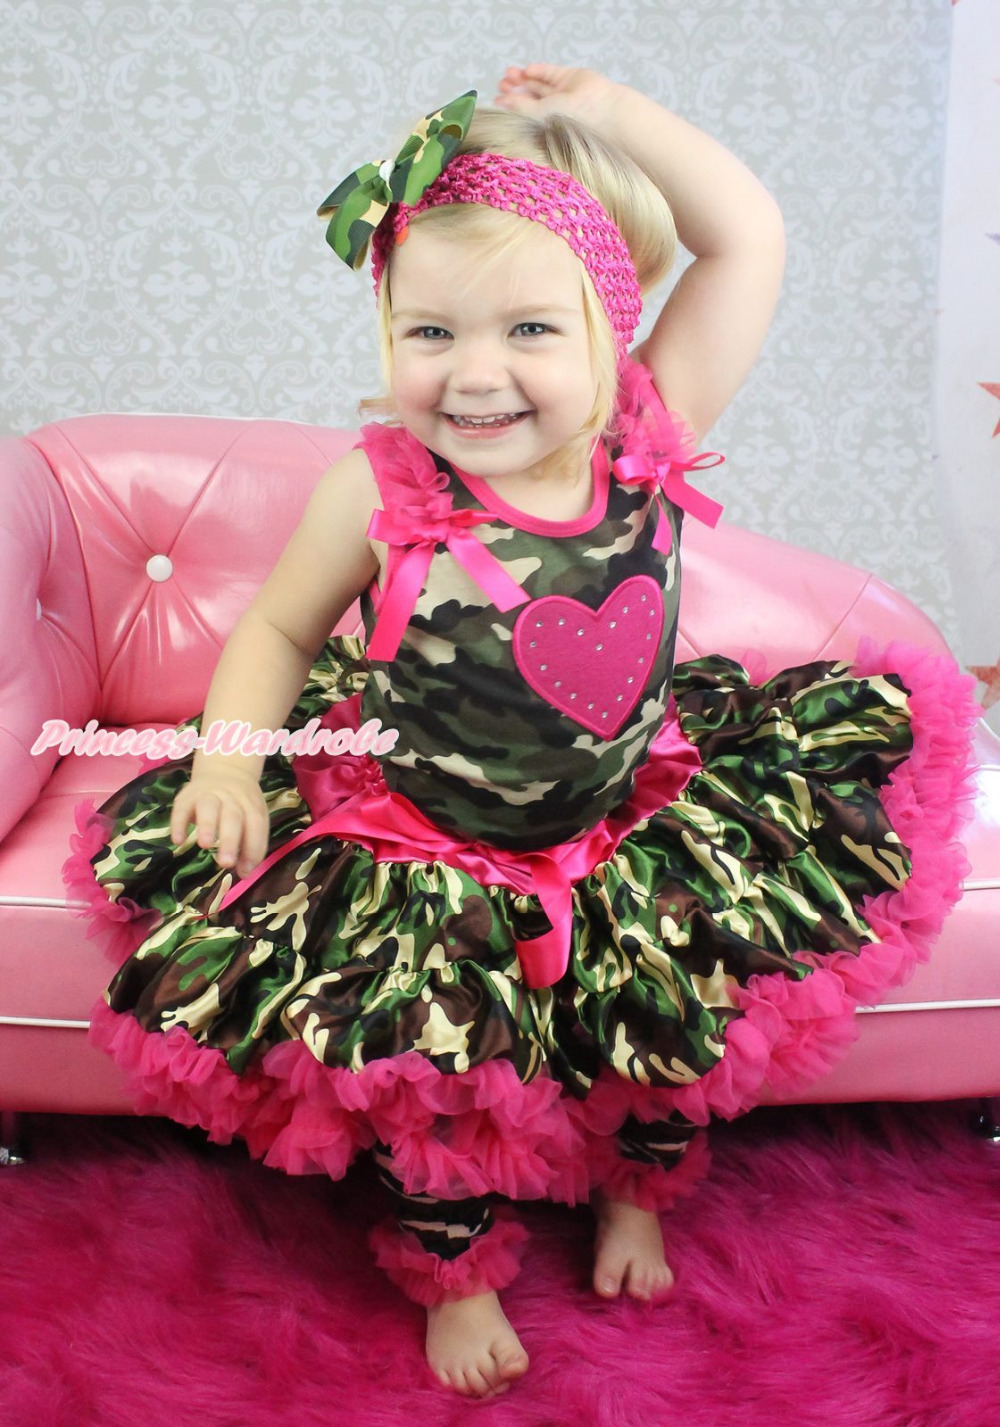 Valentine Hot Pink Heart Camouflage Top Pettiskirt Skirt Girl Cloth Outfit 1-8Y MAPSA0742 xmas red orange yellow black roses brown top baby girl pettiskirt outfit 1 8y mapsa0038